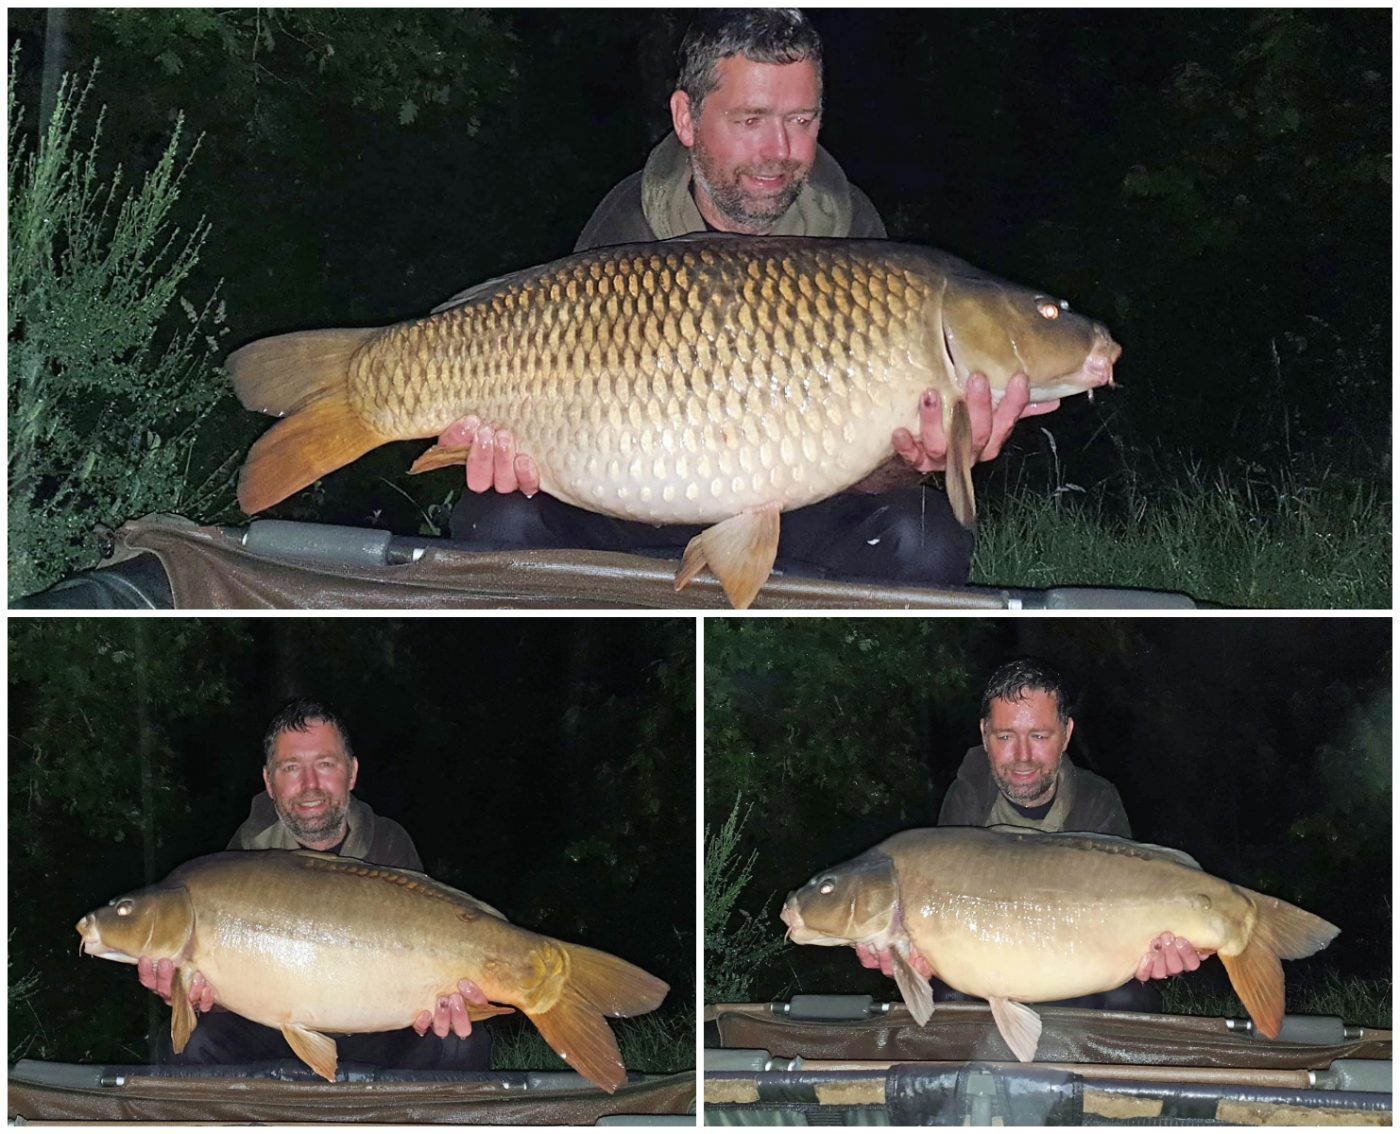 carp angler in france with three carp